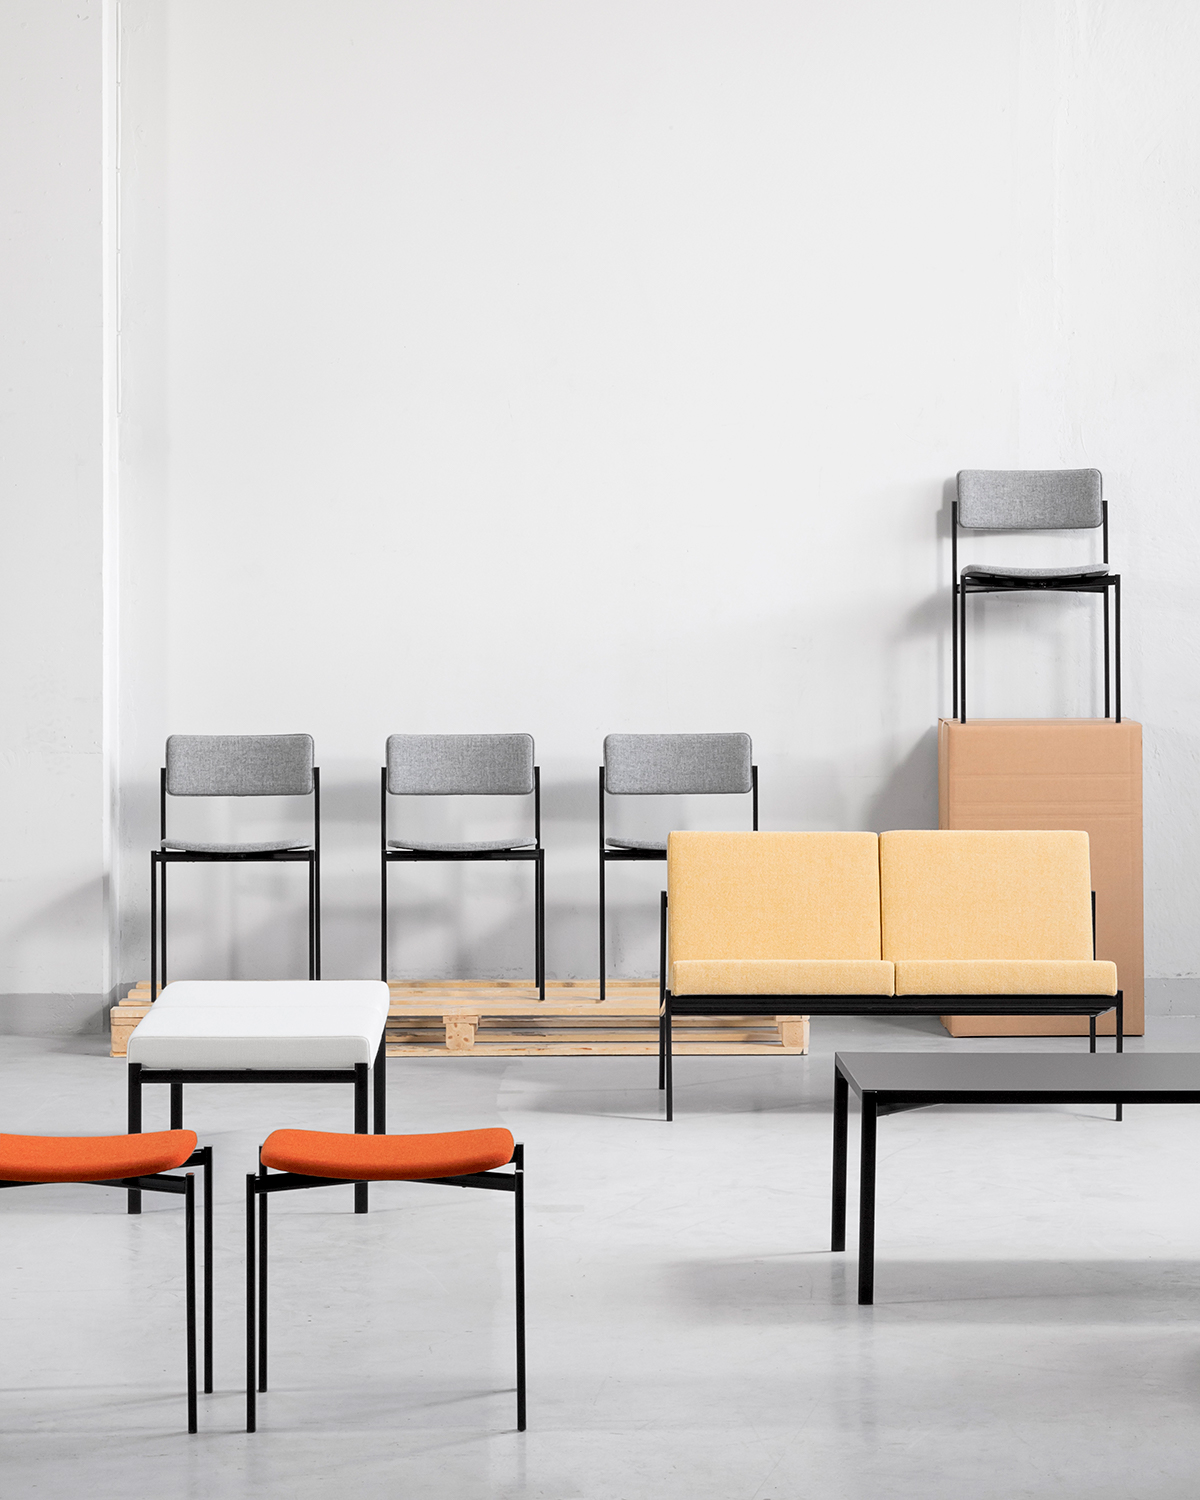 1960s modernist furniture collection - Kiki by Artek